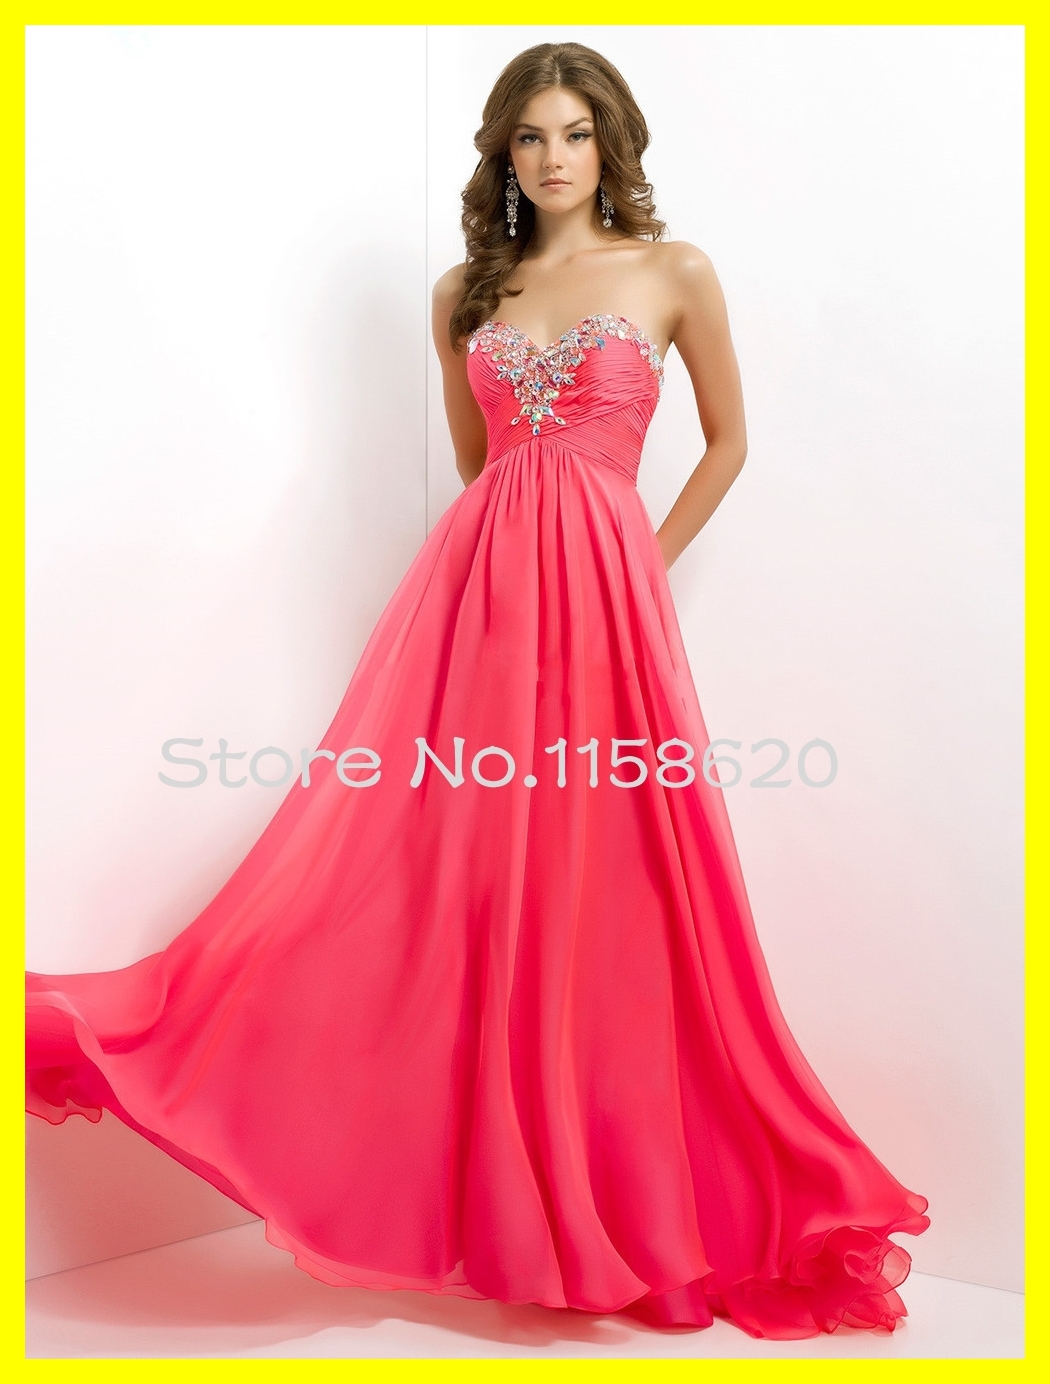 Where to buy prom dresses in seattle